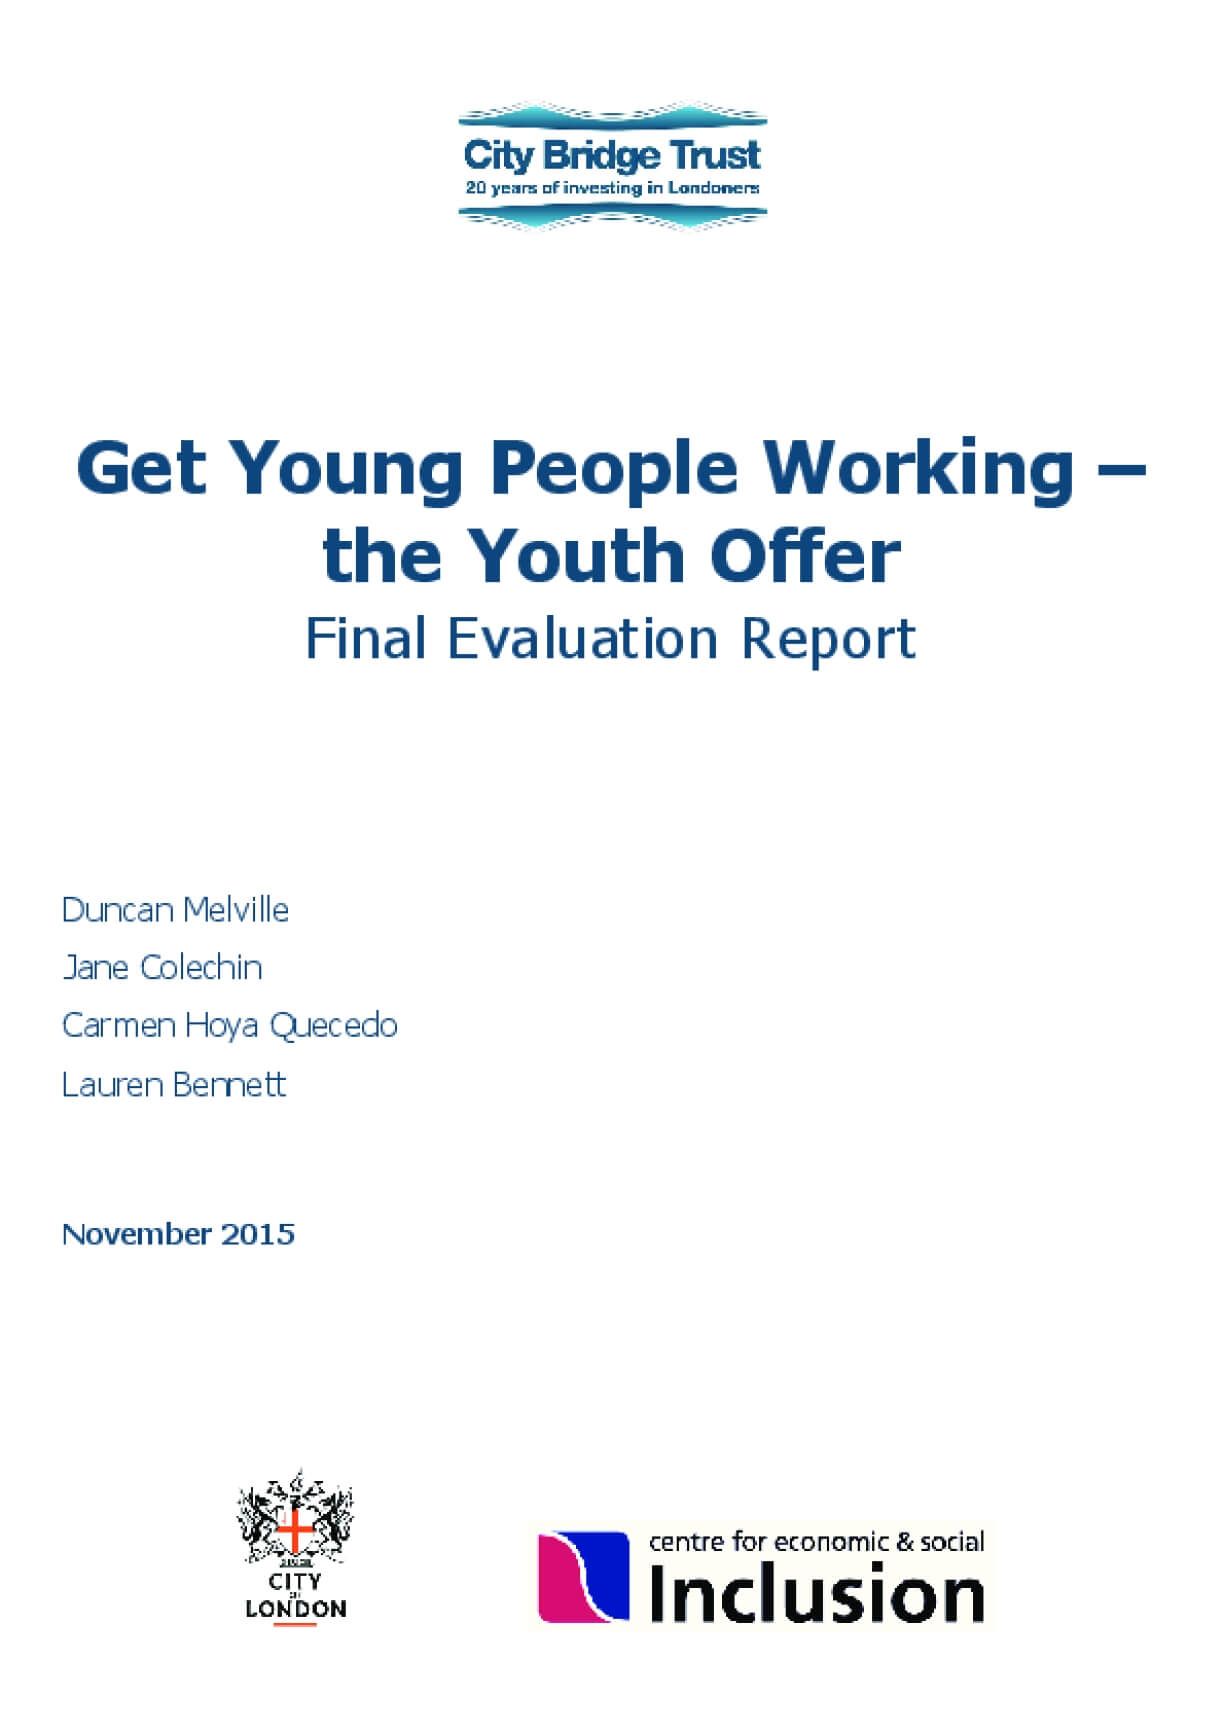 Get Young People Working - The Youth Offer, Final Evaluation Report